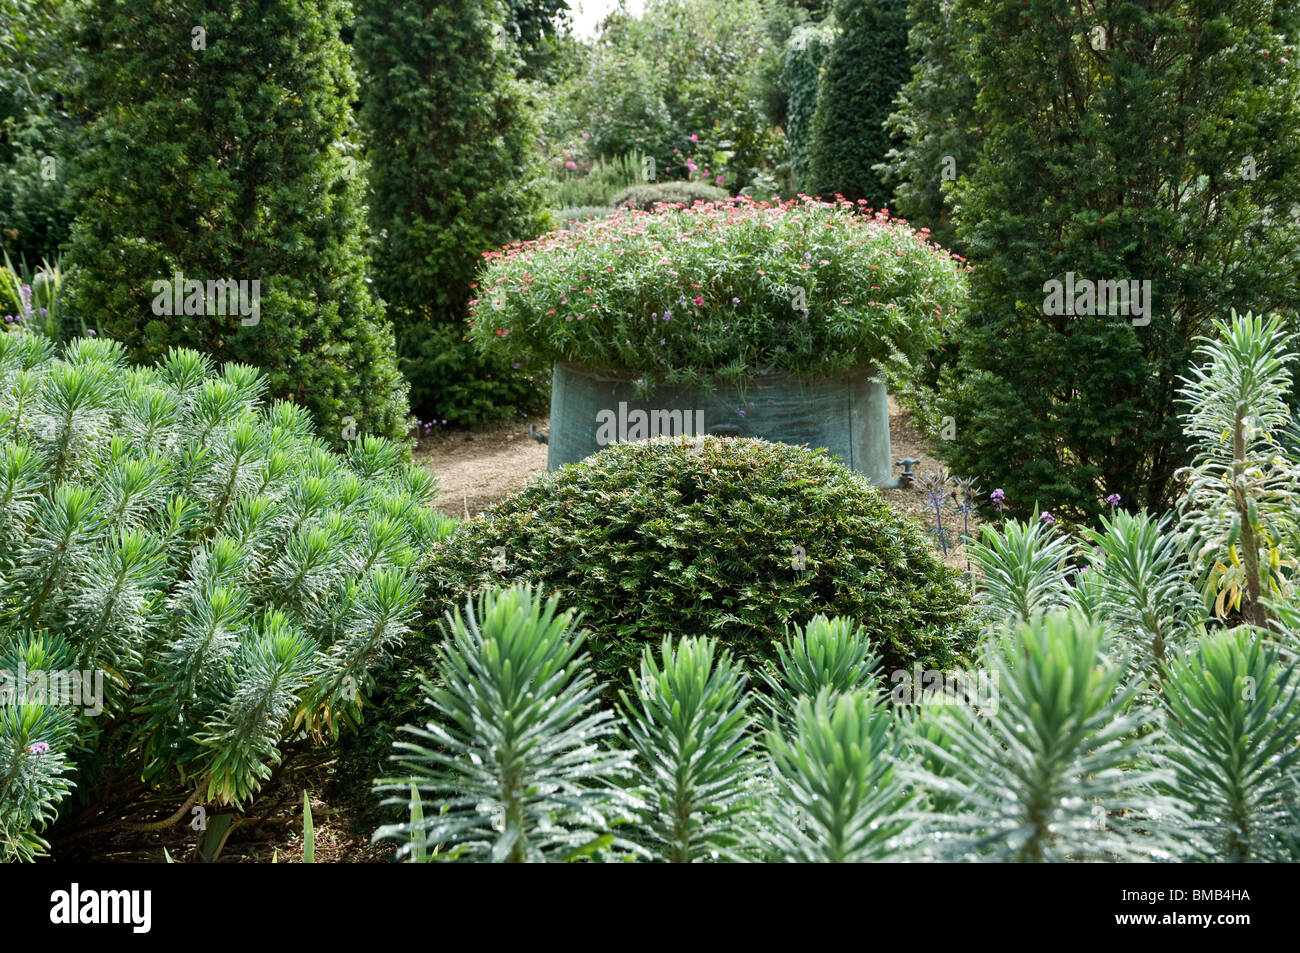 Euphorbia, Yew tree topiary and copper pot with pink flowers, Hanham Court Gardens, Cotswolds, UK - Stock Image